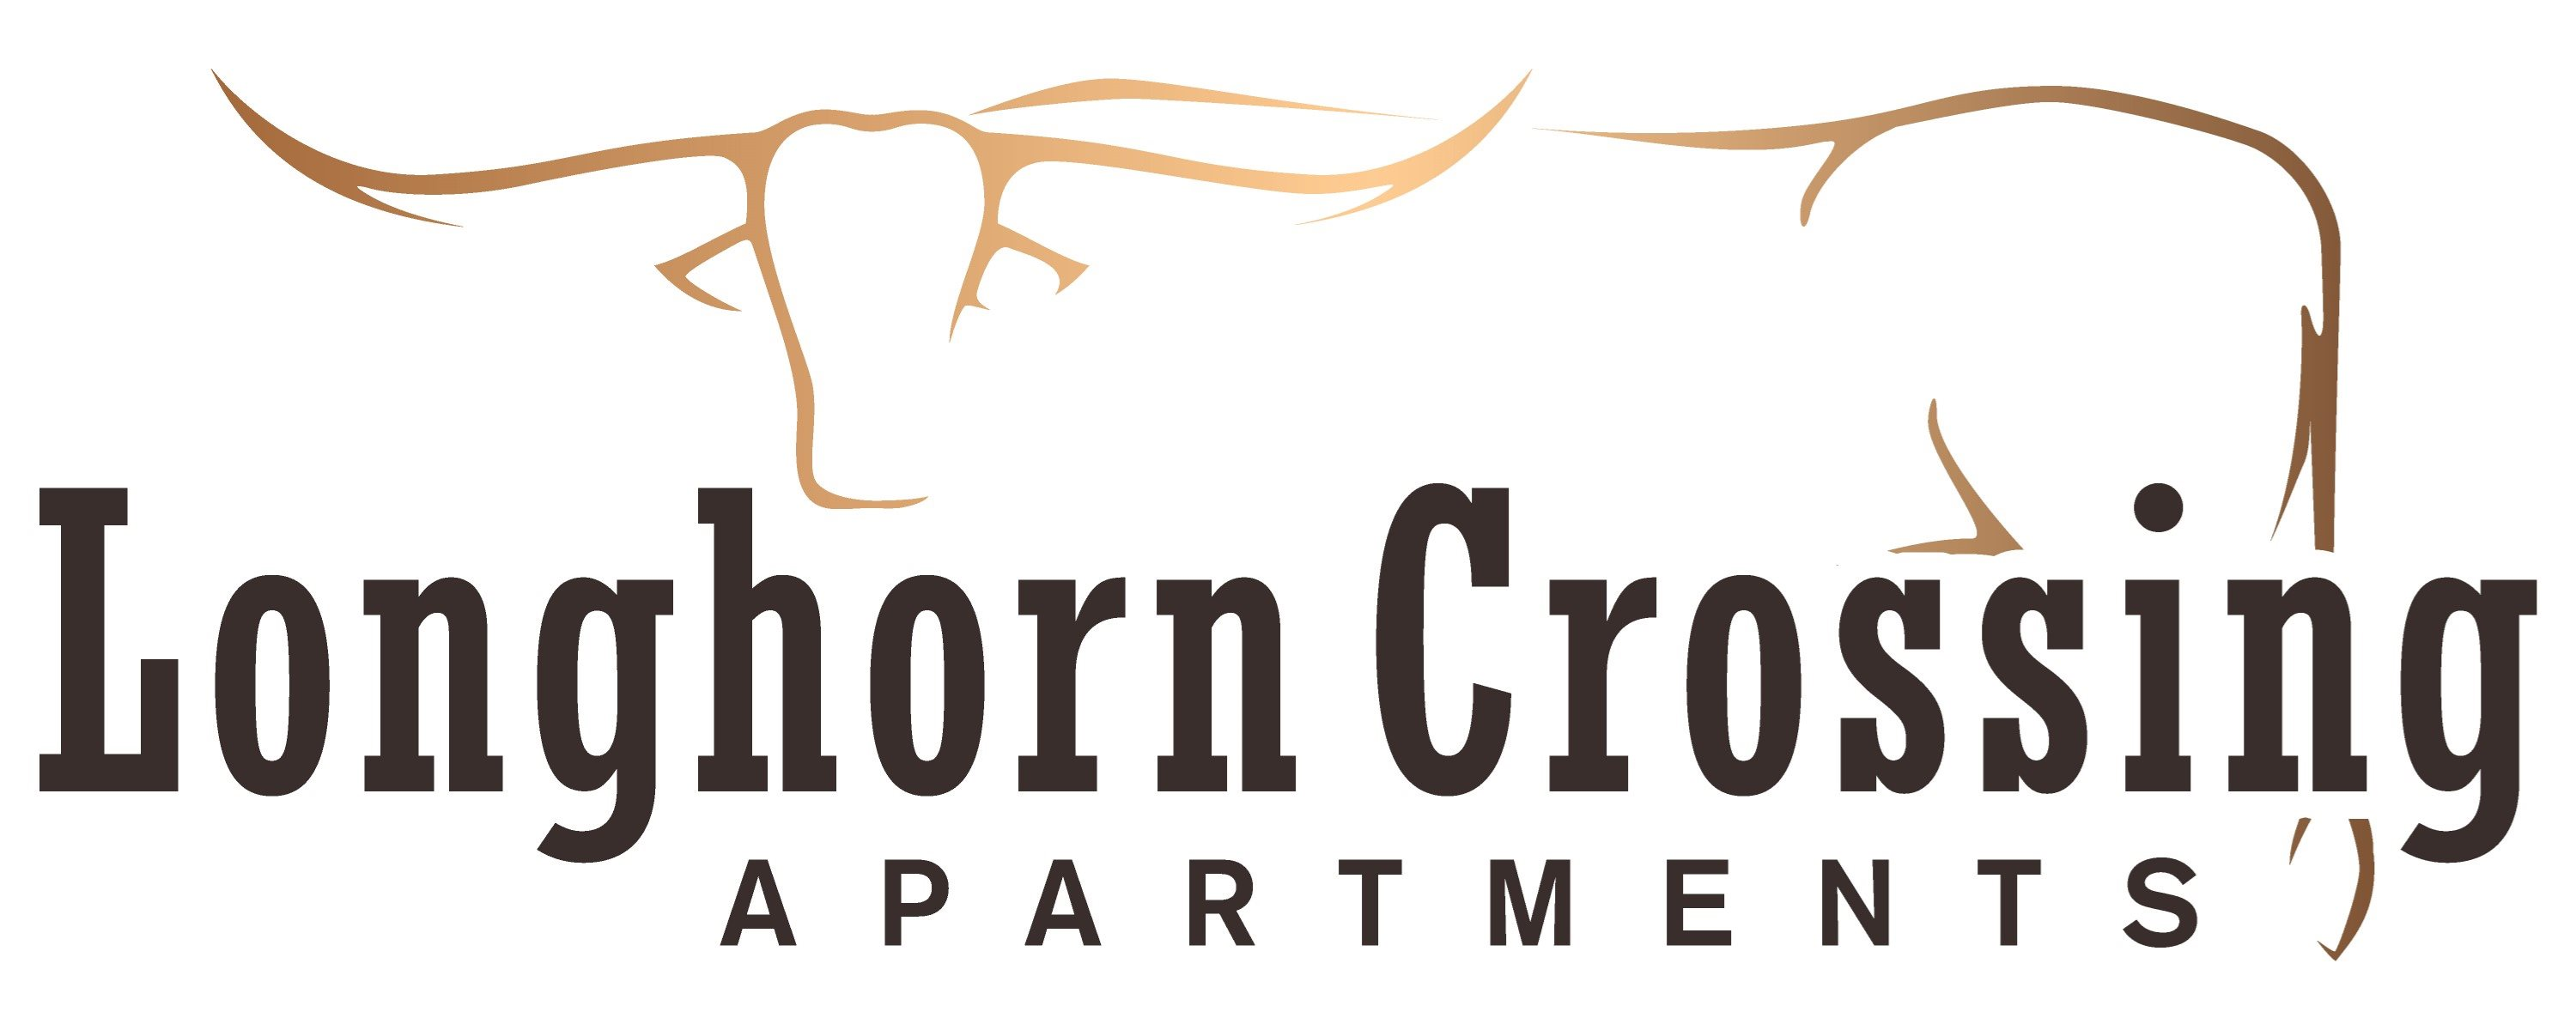 Fort Worth Property Logo 48